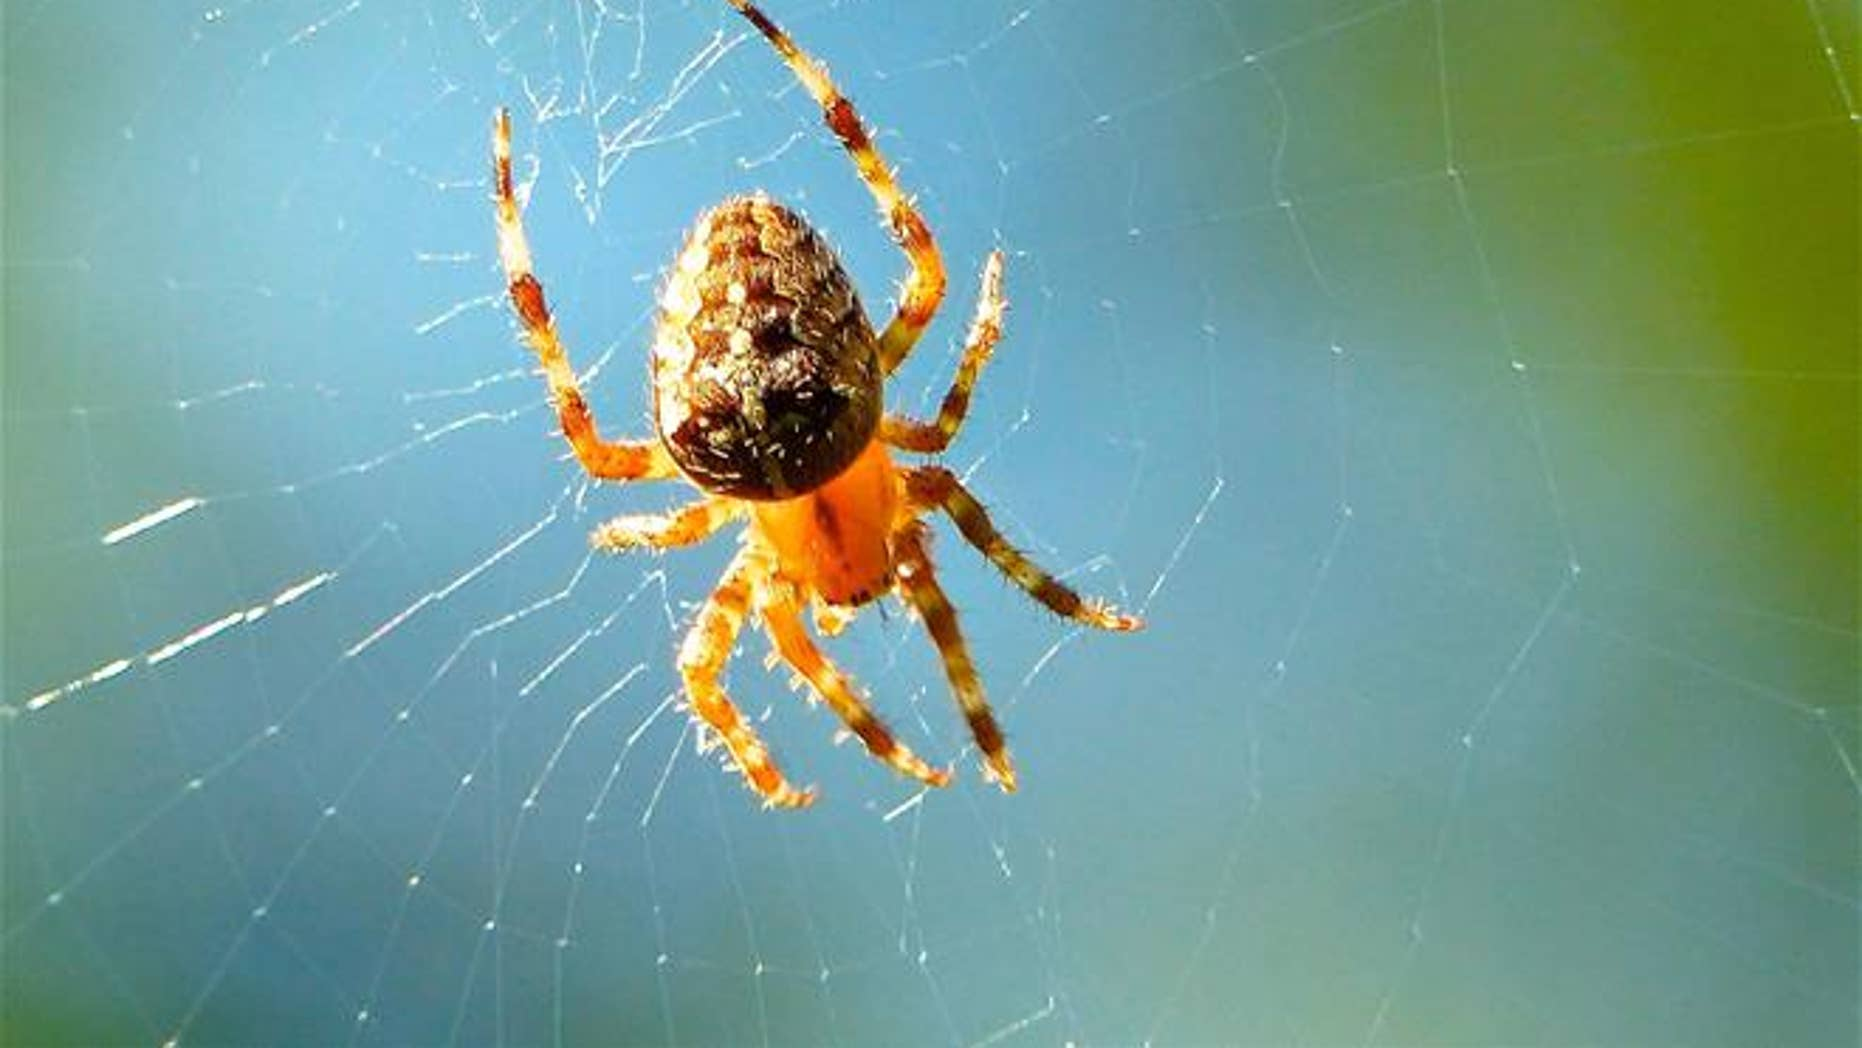 A new study found spiders can actually hear sounds from up to 16 feet away.